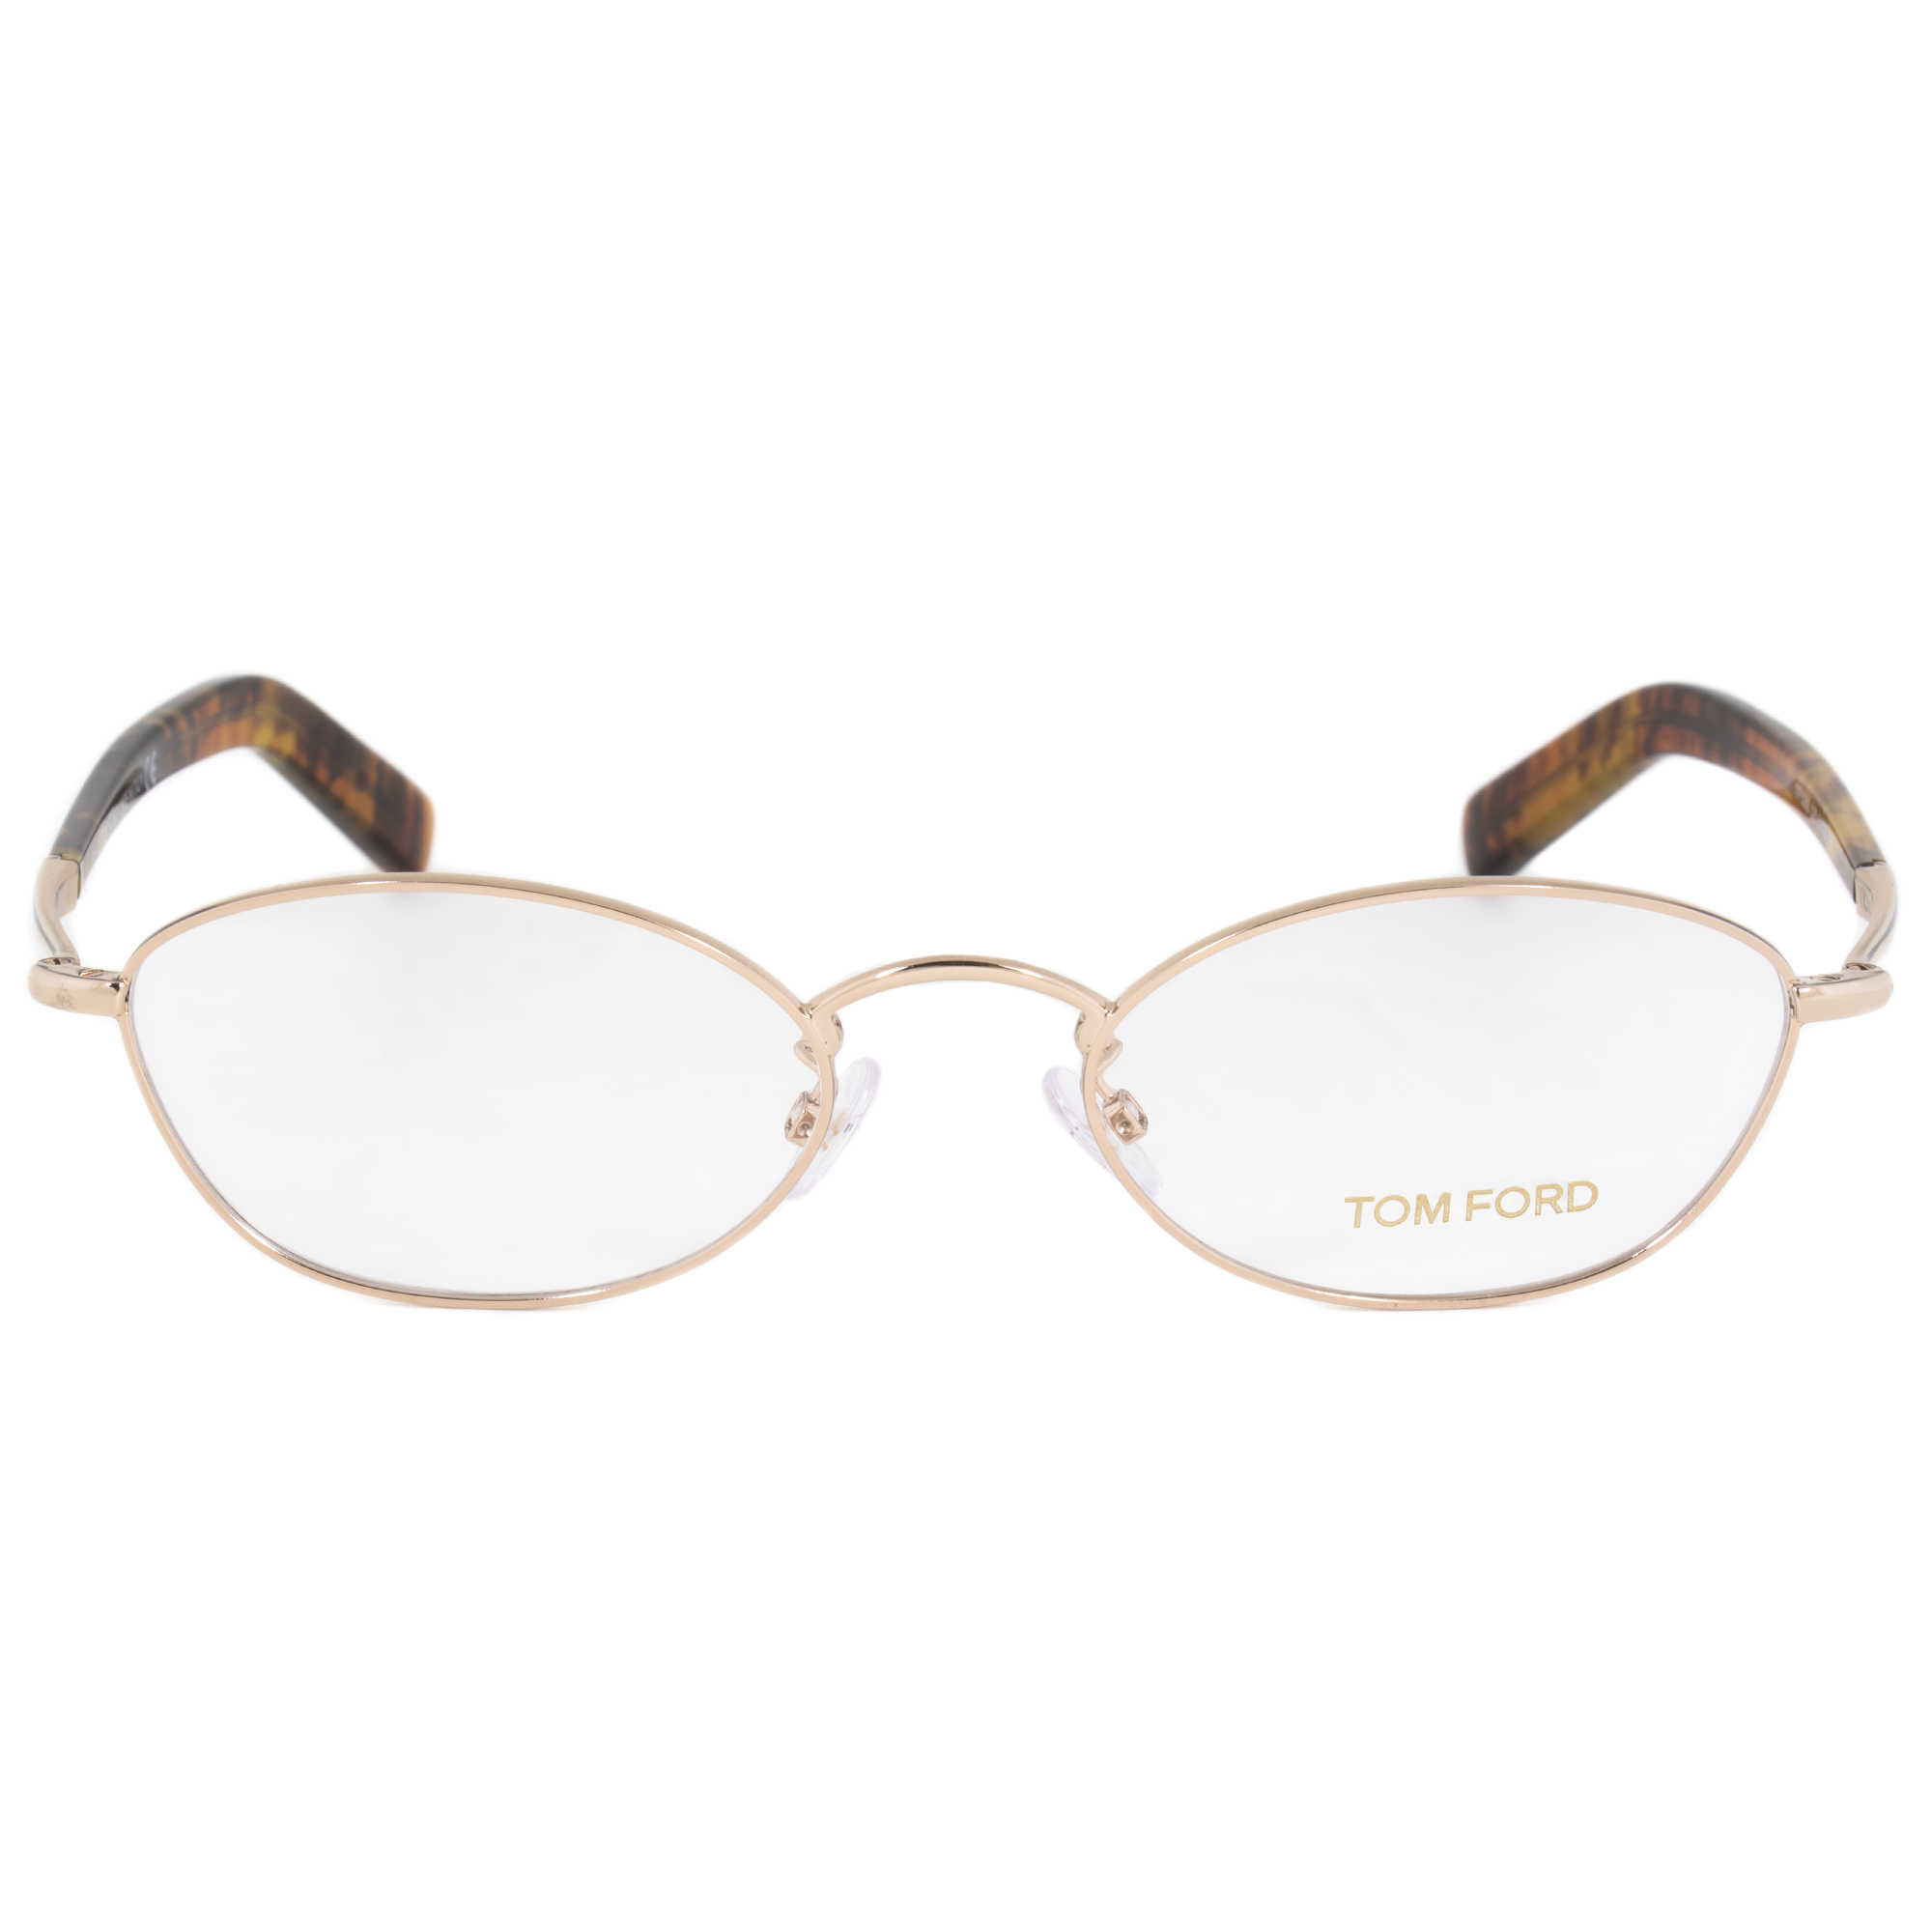 895a28c7a8 Tom Ford FT5368 28 Oval